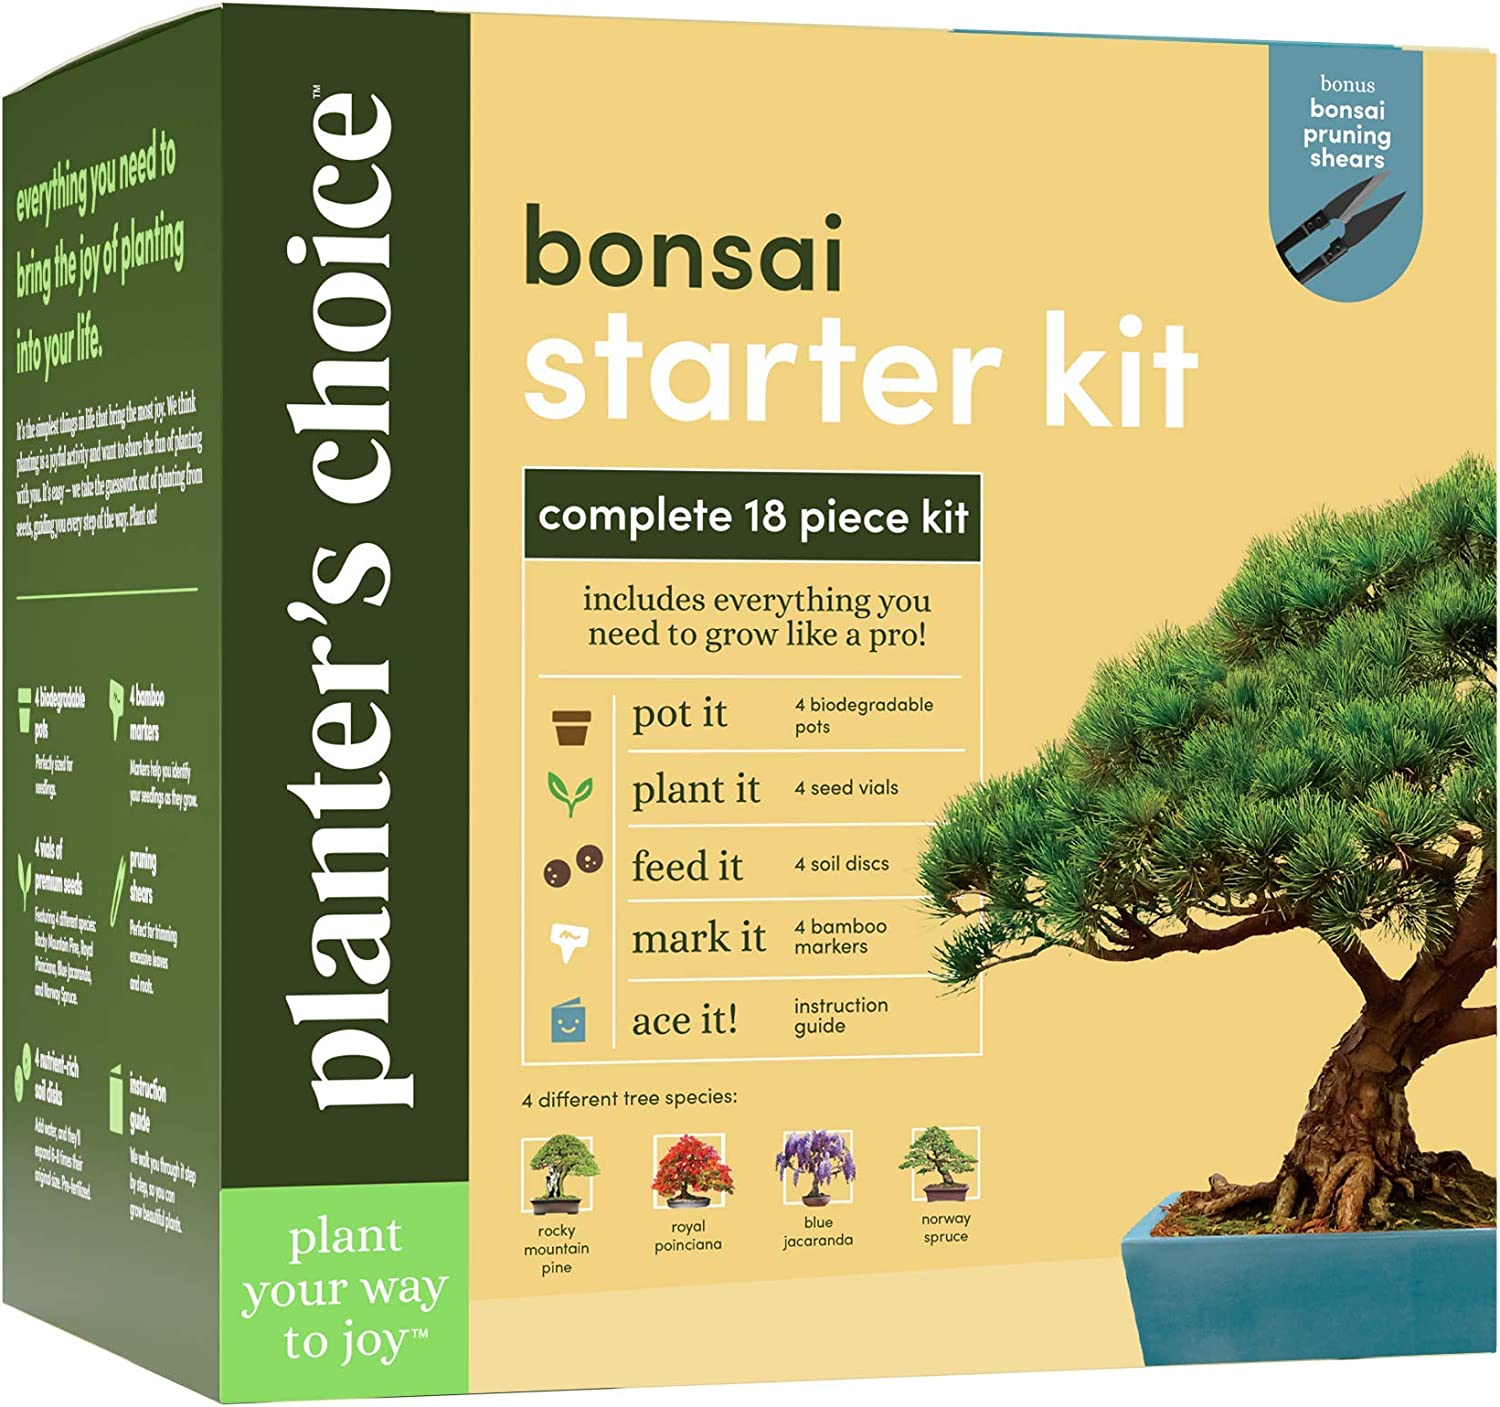 Amazon Com Bonsai Starter Kit The Complete Growing Kit To Easily Grow 4 Bonsai Trees From Seed Comprehensive Guide Bamboo Plant Markers Unusual Gardening Gifts Ideas For Women,French Country Style Interior Design Bedroom